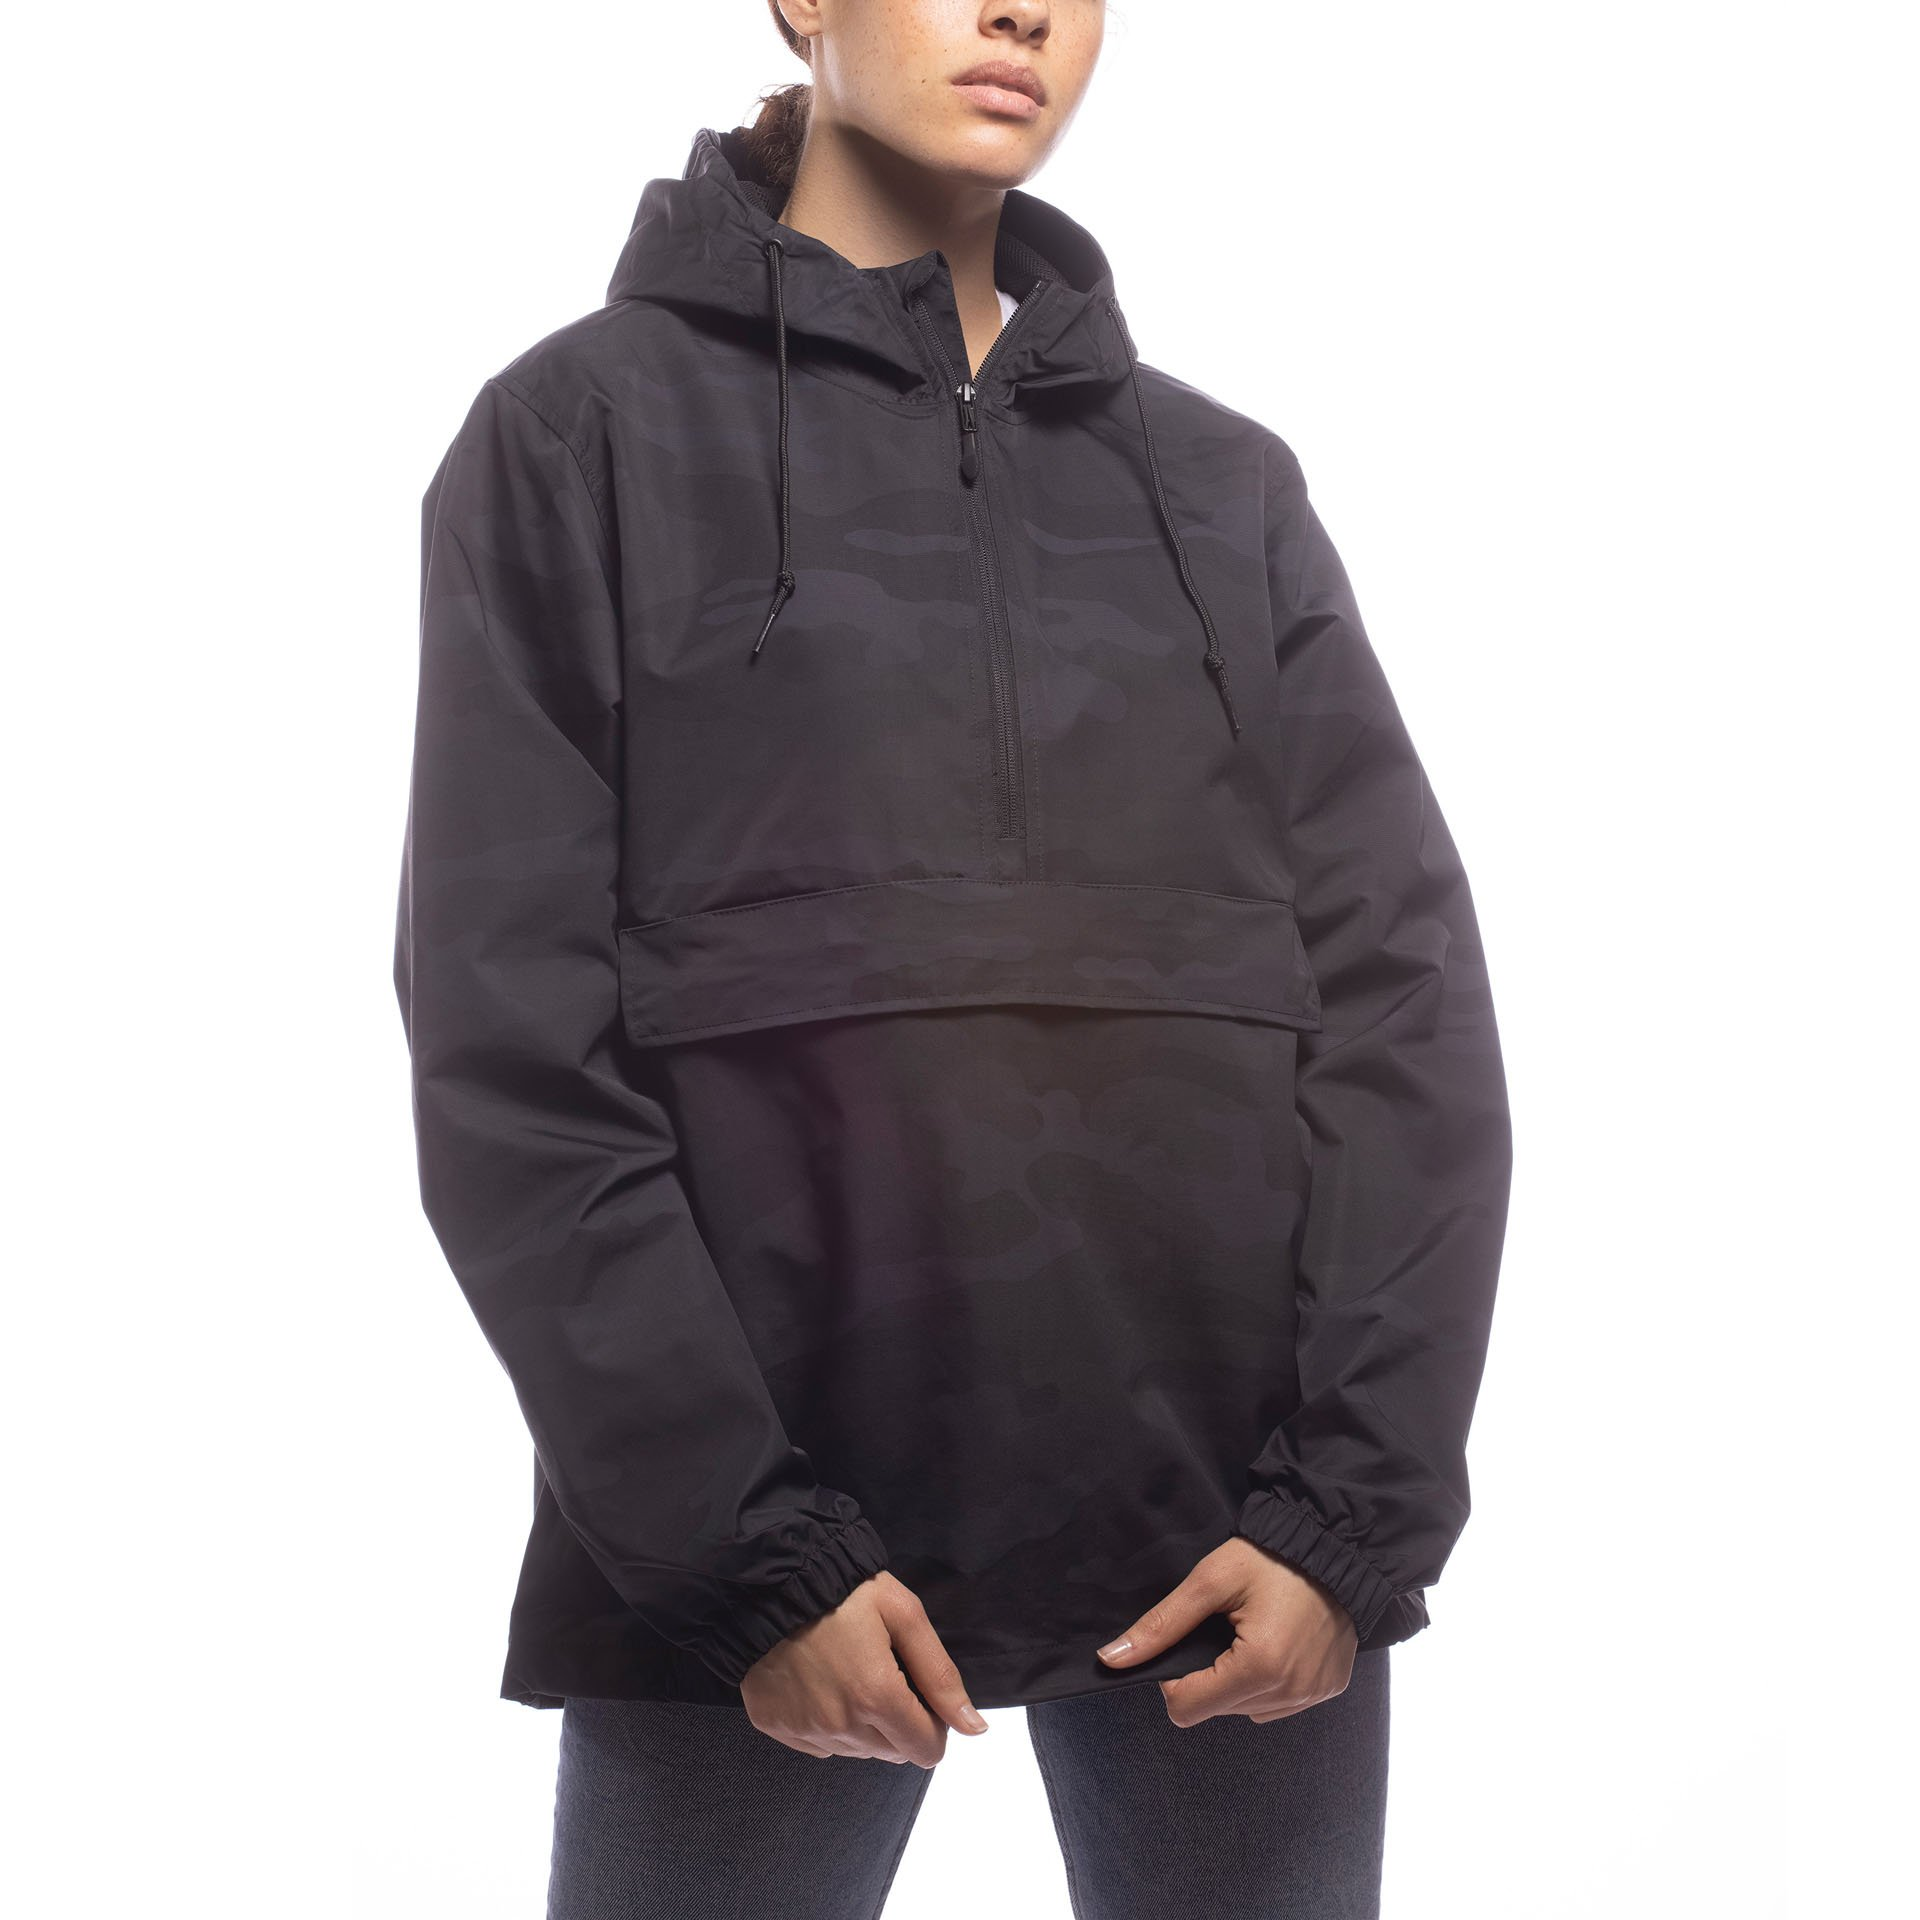 Made For The People - Unisex Outerwear Collection Anorak - Camo